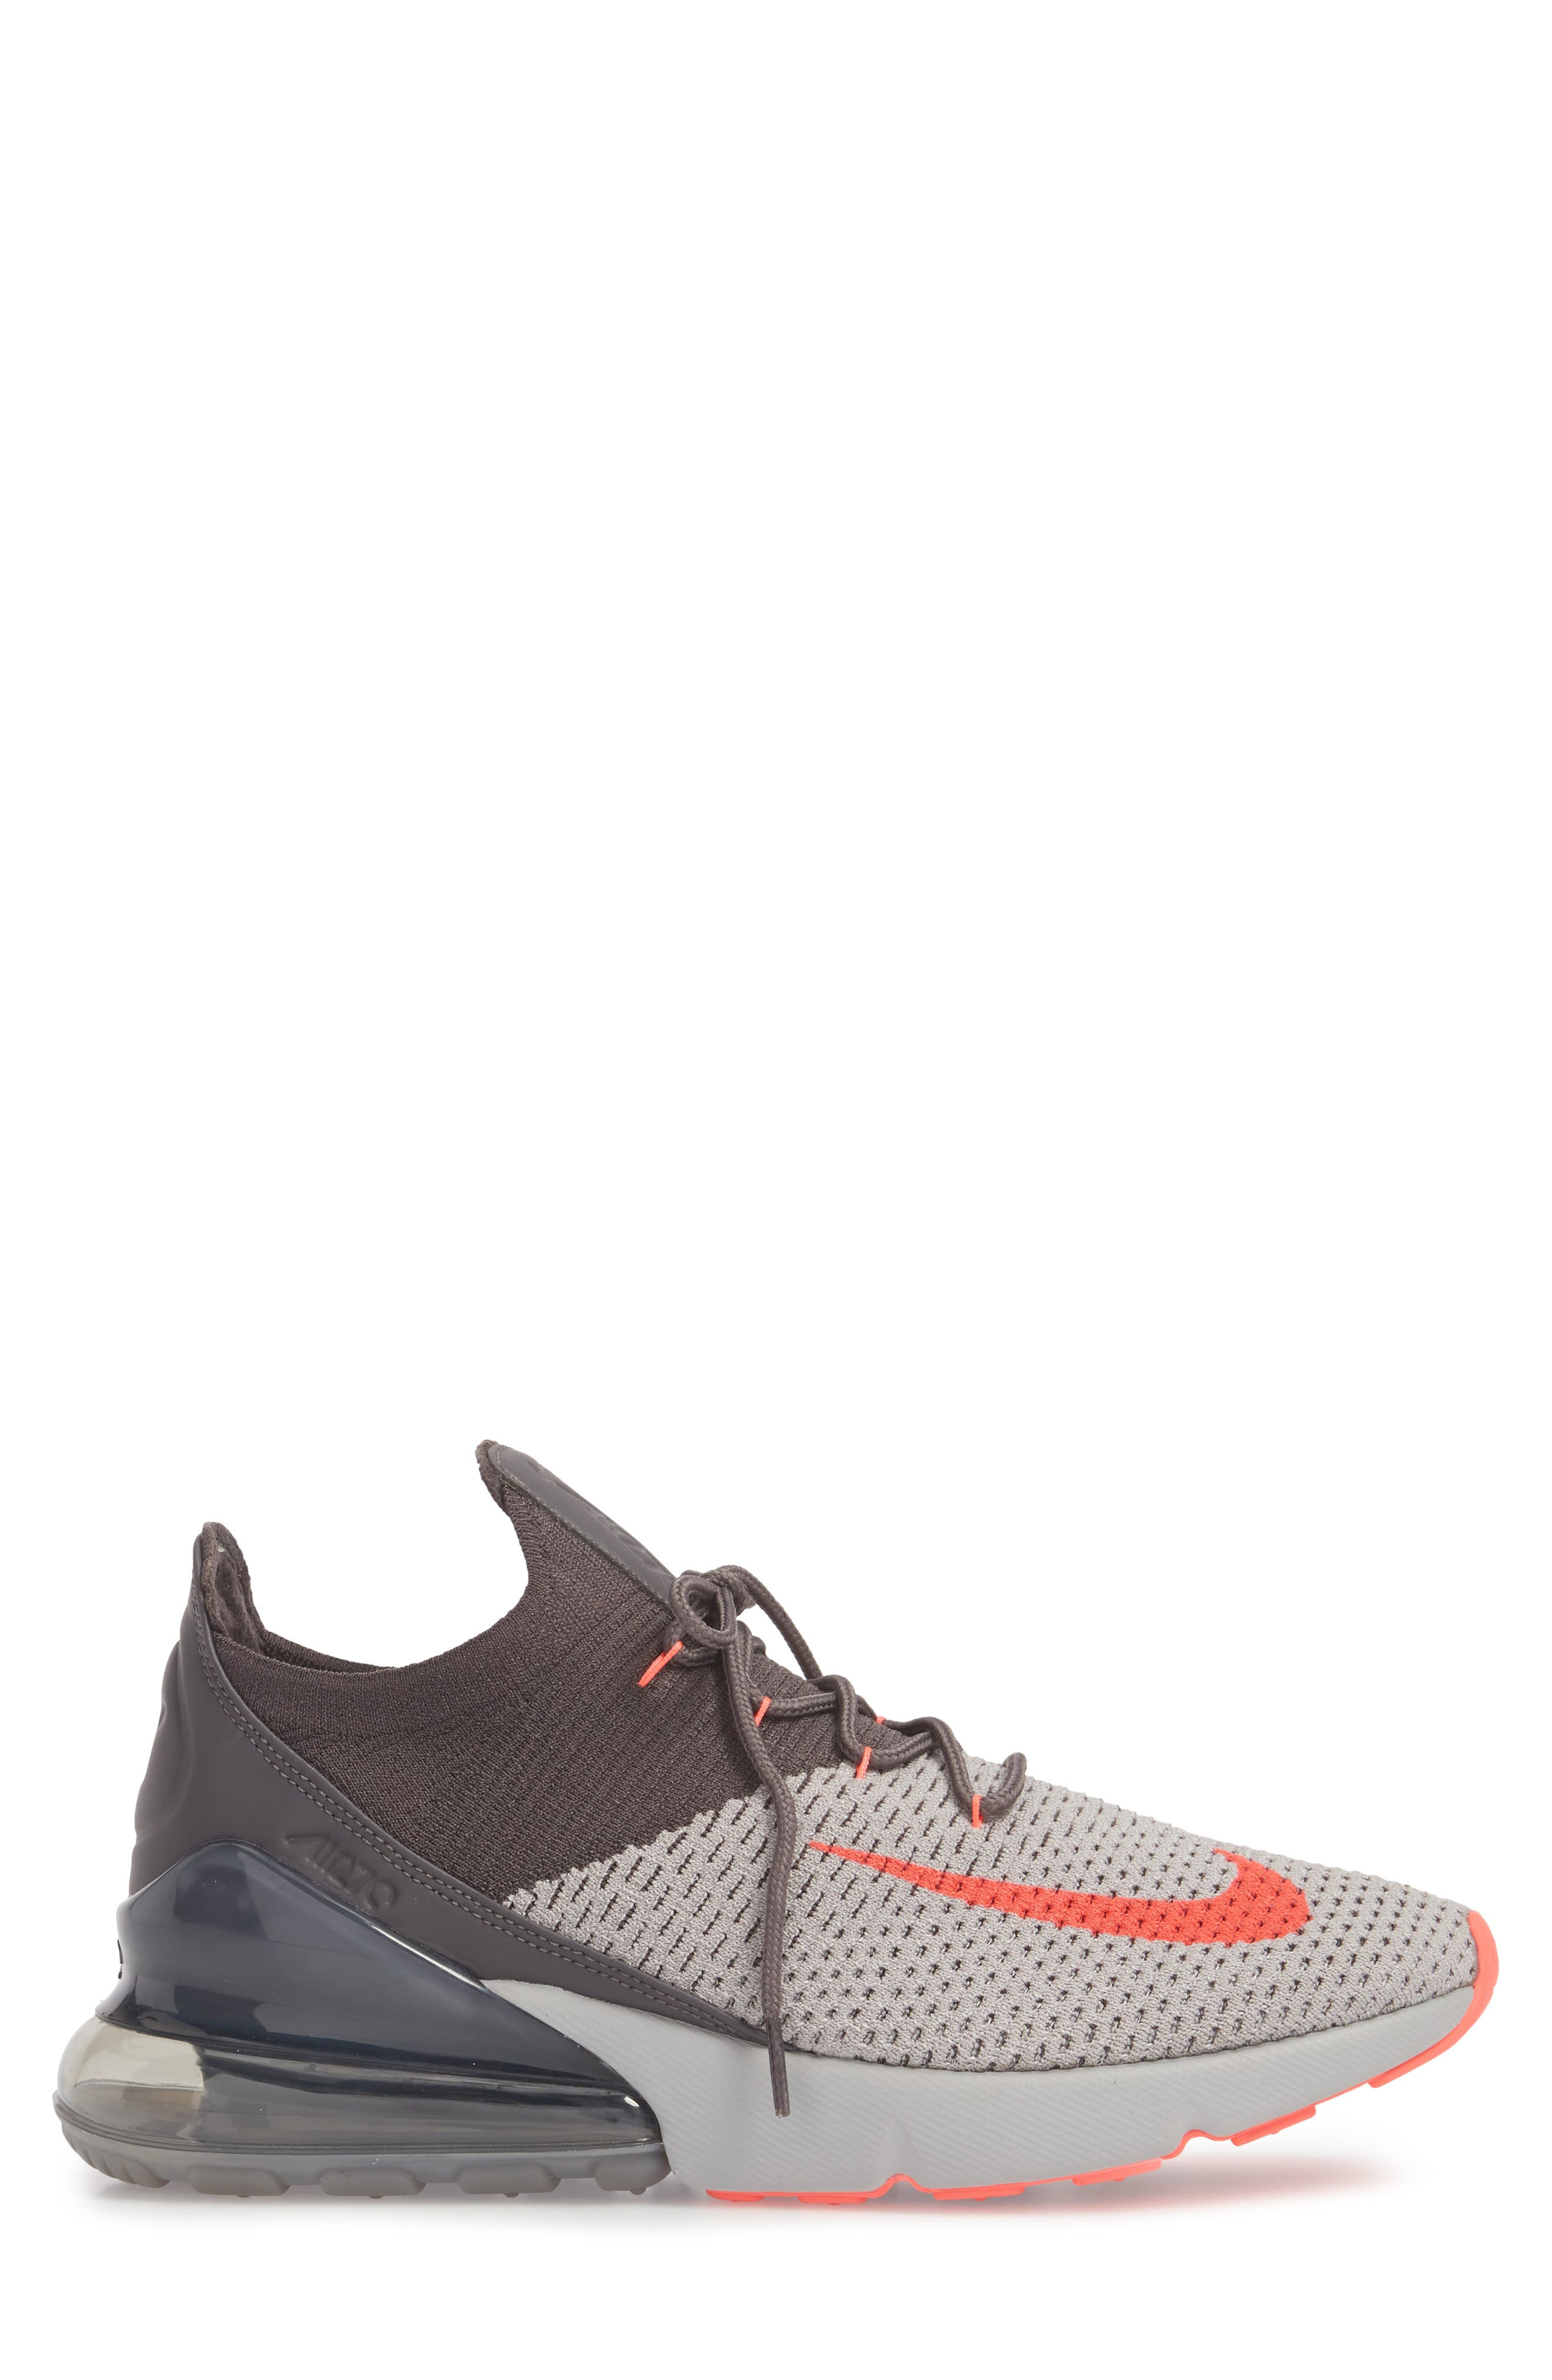 Air Max 270 Flyknit Sneaker,                             Alternate thumbnail 16, color,